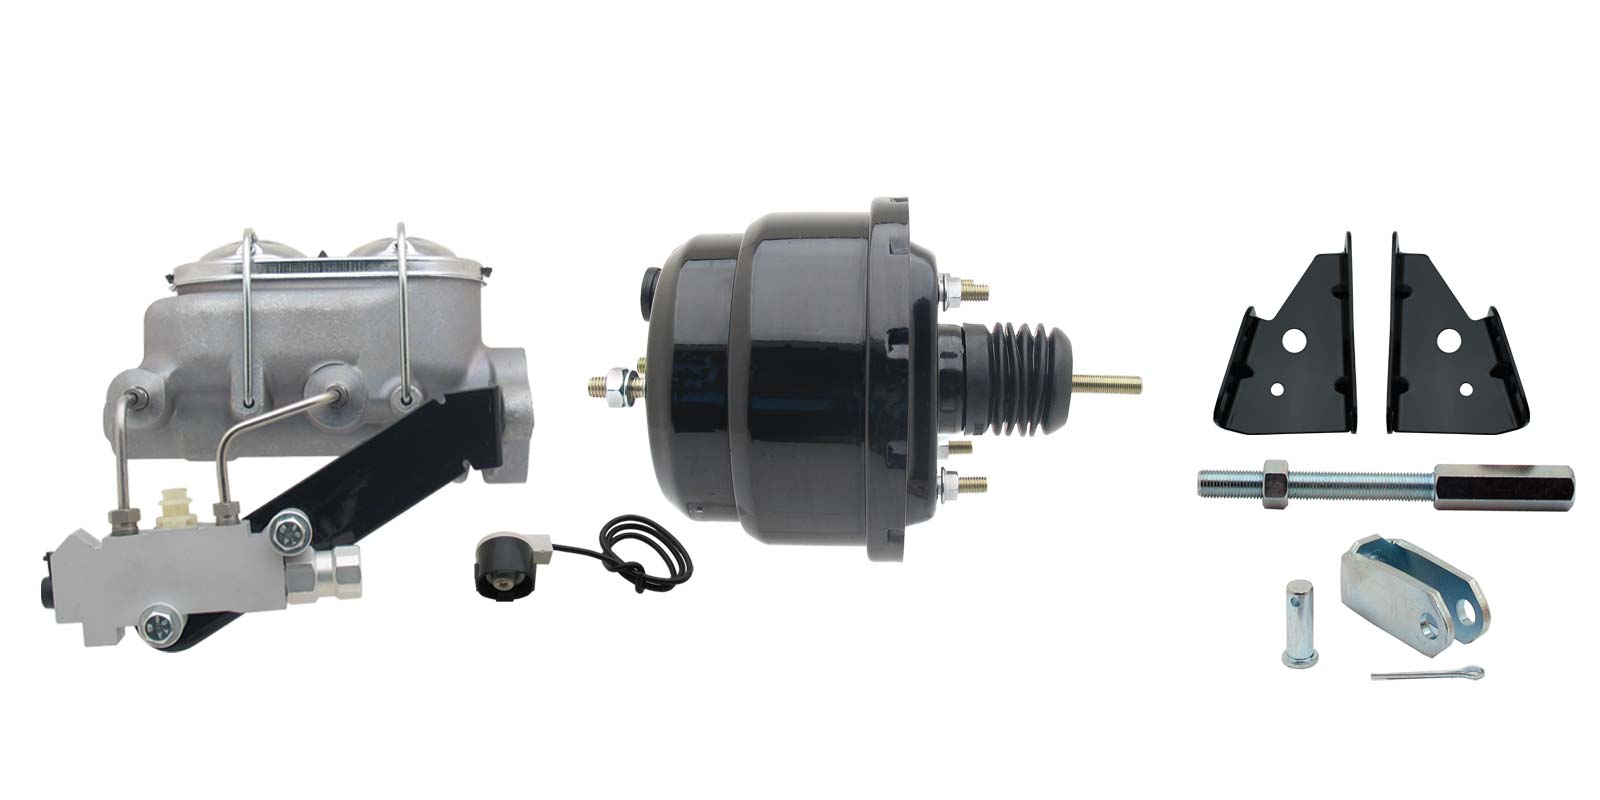 GM A, F, X 8 Dual Powder Coated Black Proline Power Brake Booster Conversion Kit (Disc/ Drum)